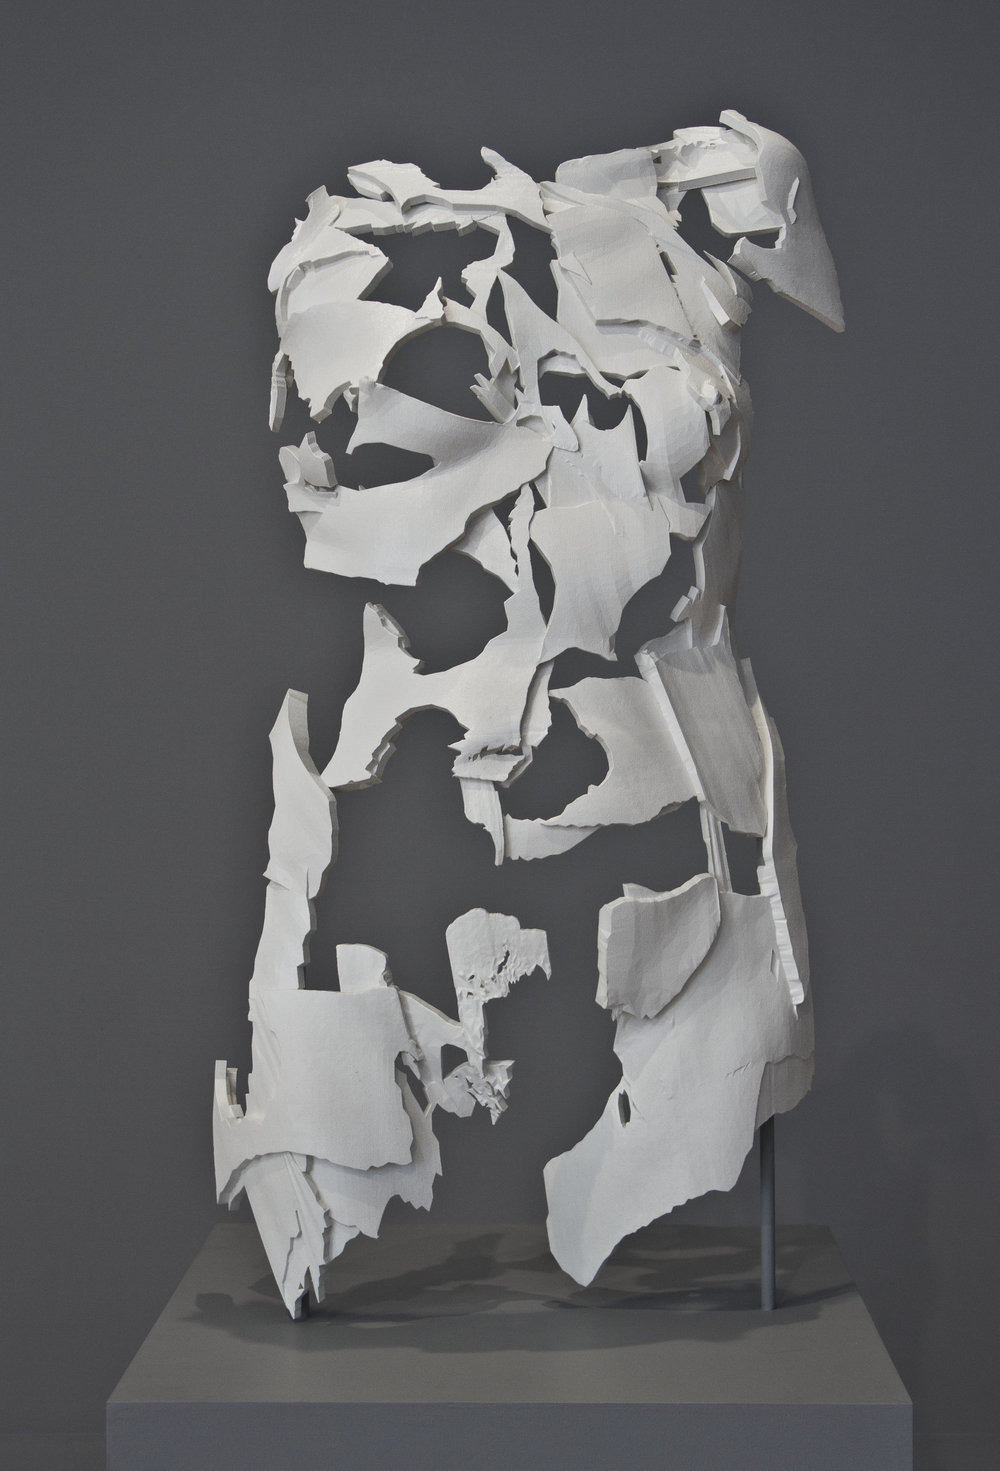 Torso of a Woman (Shards)